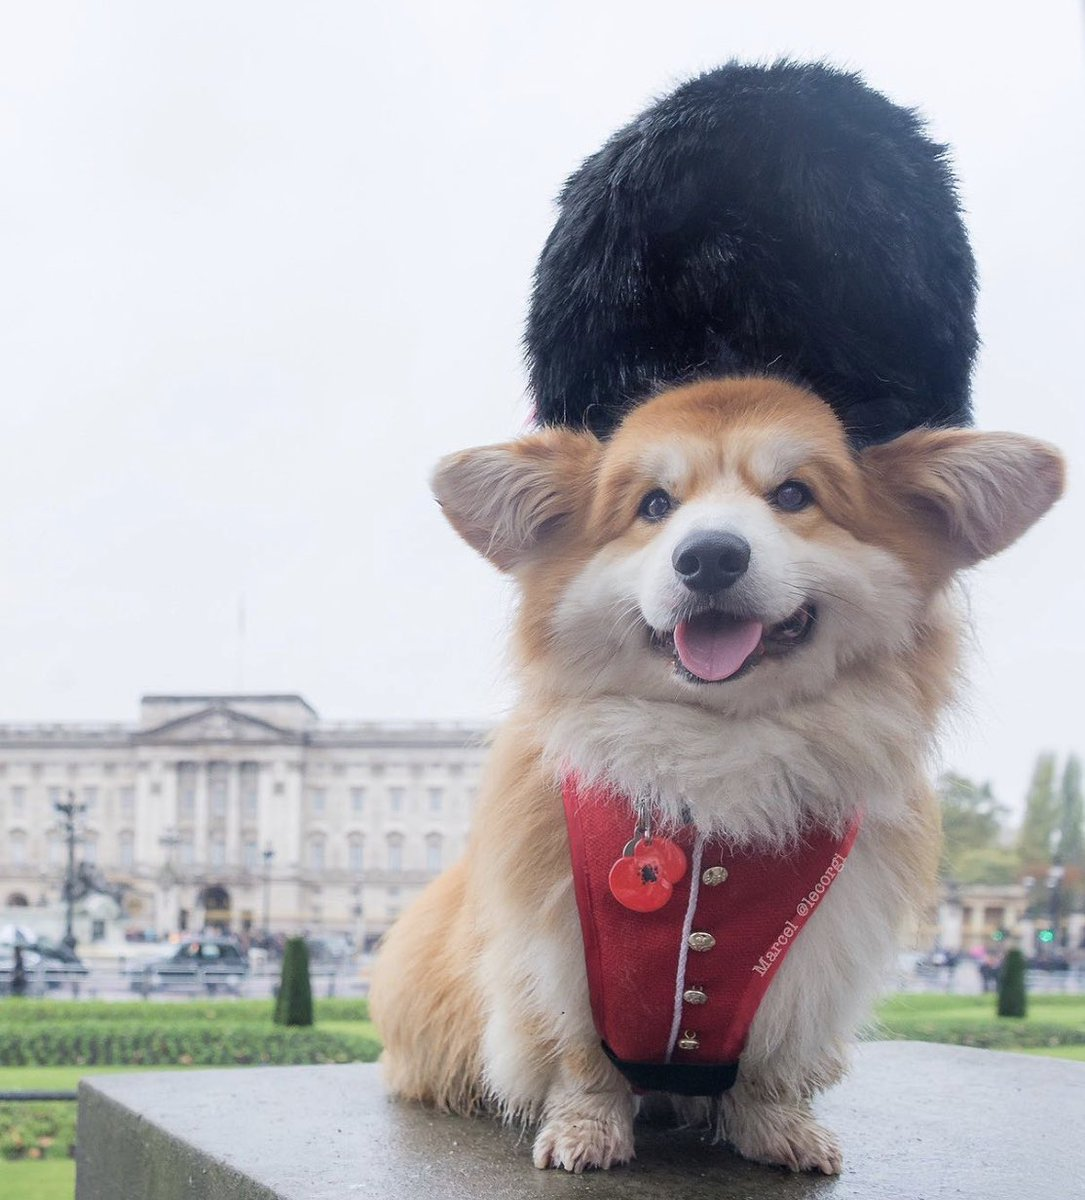 This is Marcel. He was once a member of the Royal Guard. Didn't last long because he couldn't stop smiling. 14/10